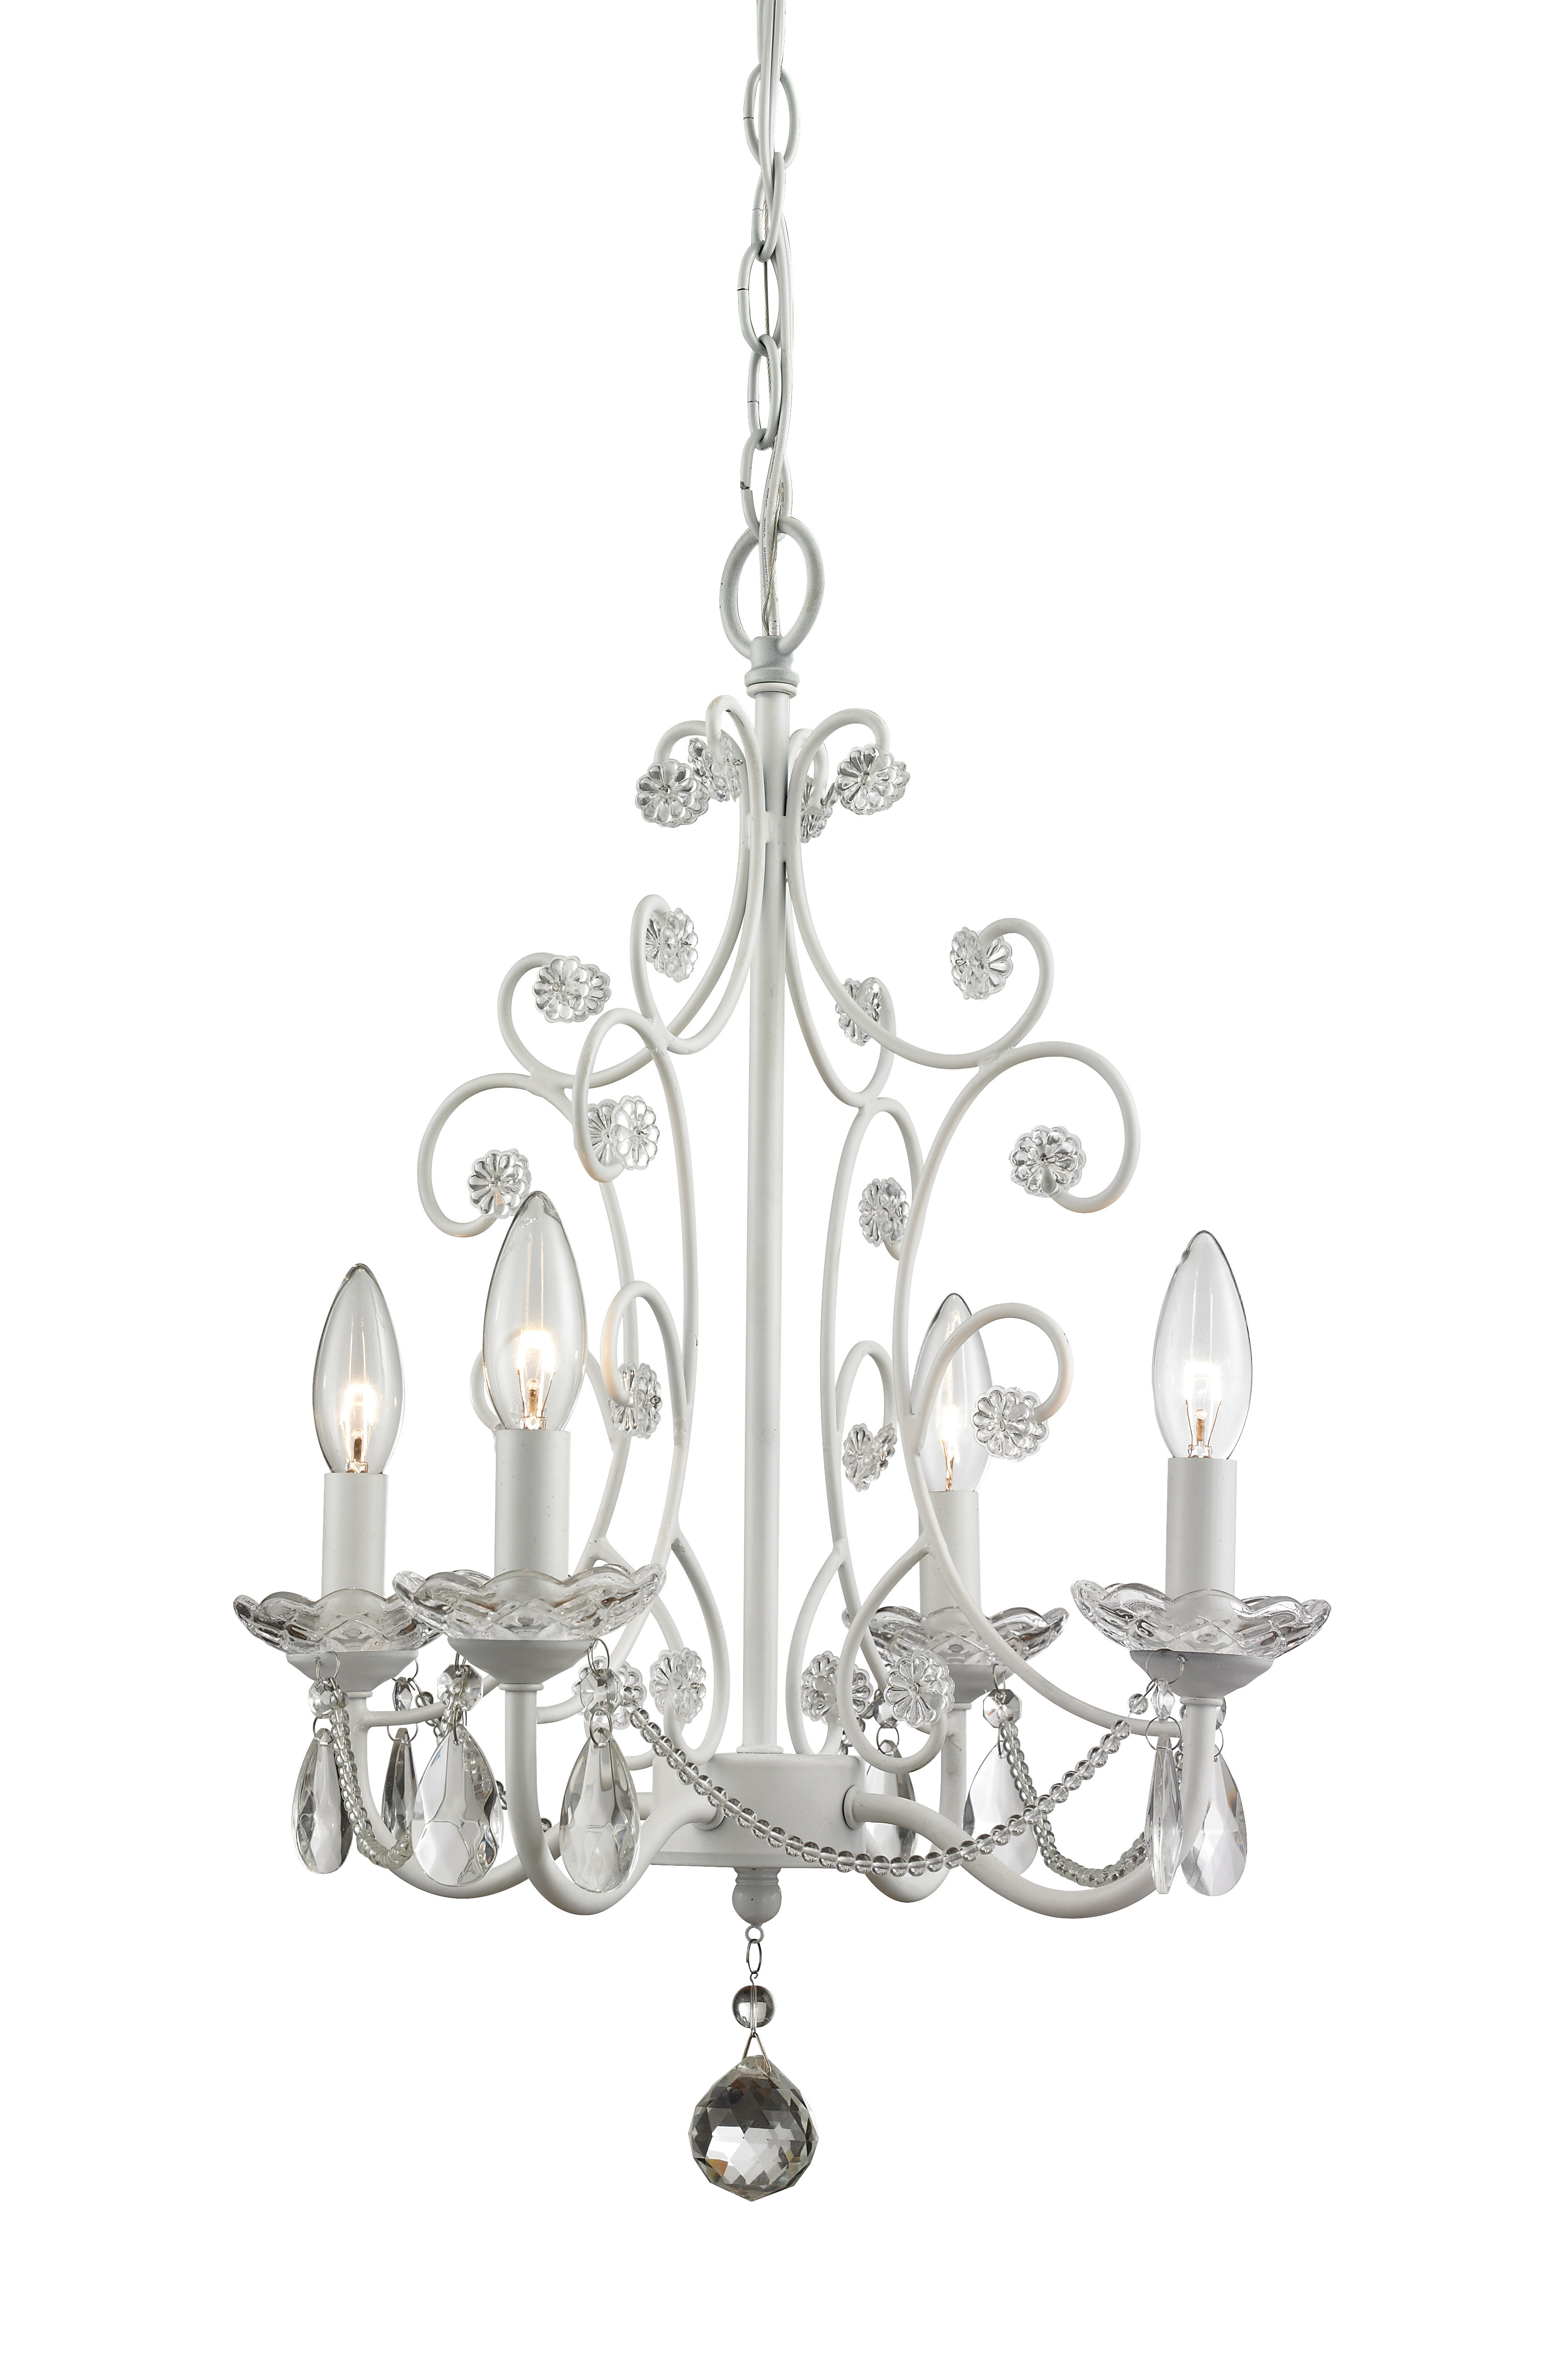 Aquilla 4 Light Candle Style Chandelier With Regard To Famous Oriana 4 Light Single Geometric Chandeliers (View 1 of 20)